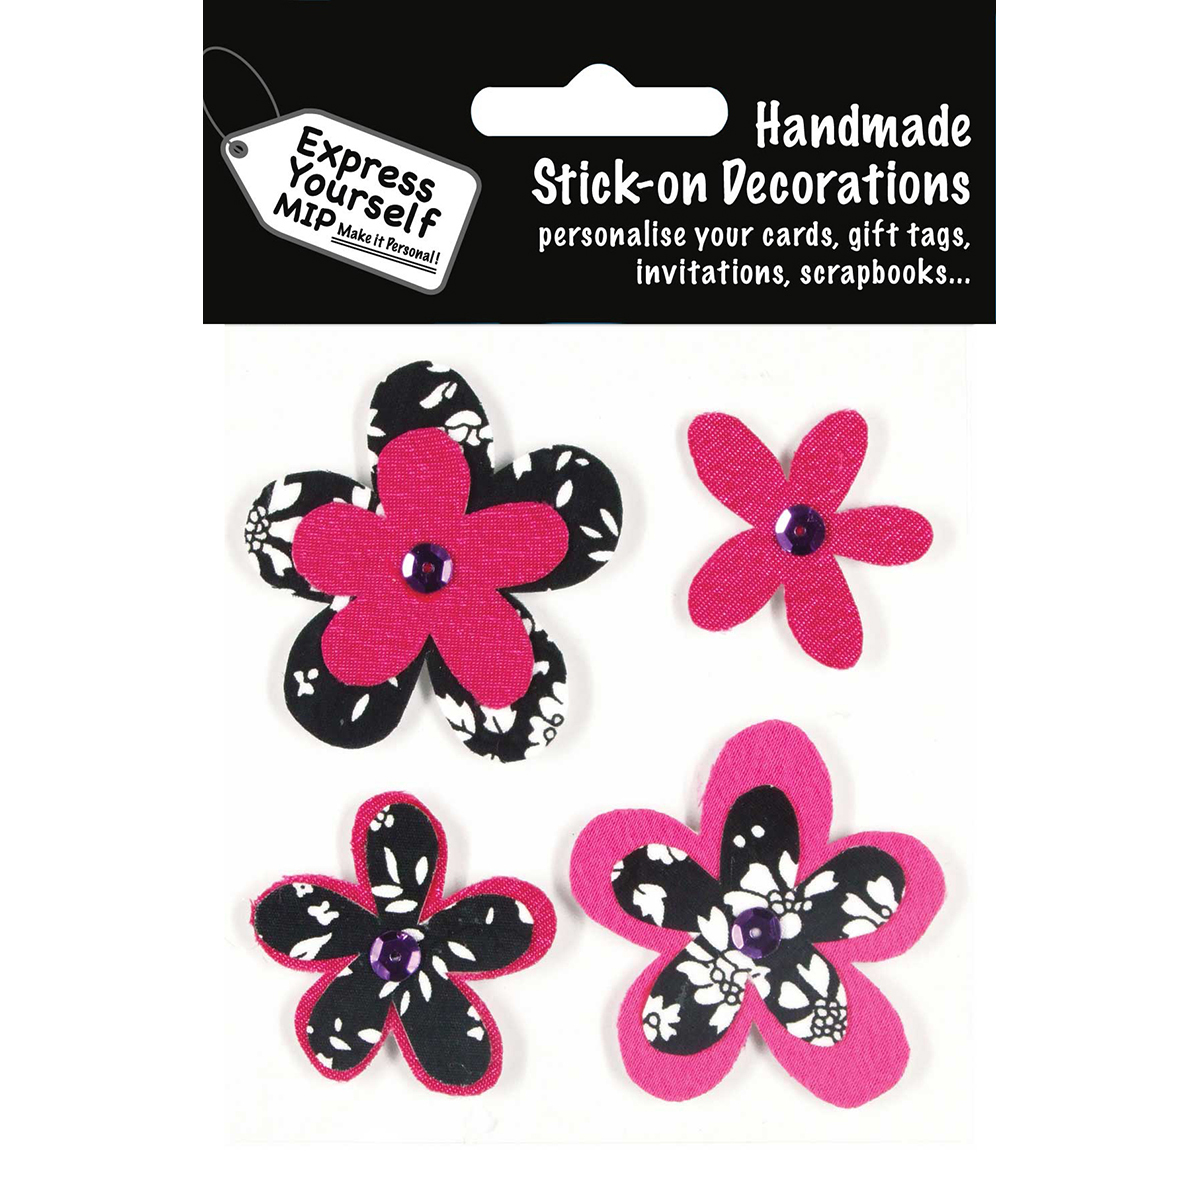 Express Yourself MIP 3D Stickers-4 Flowers - Black & Pink